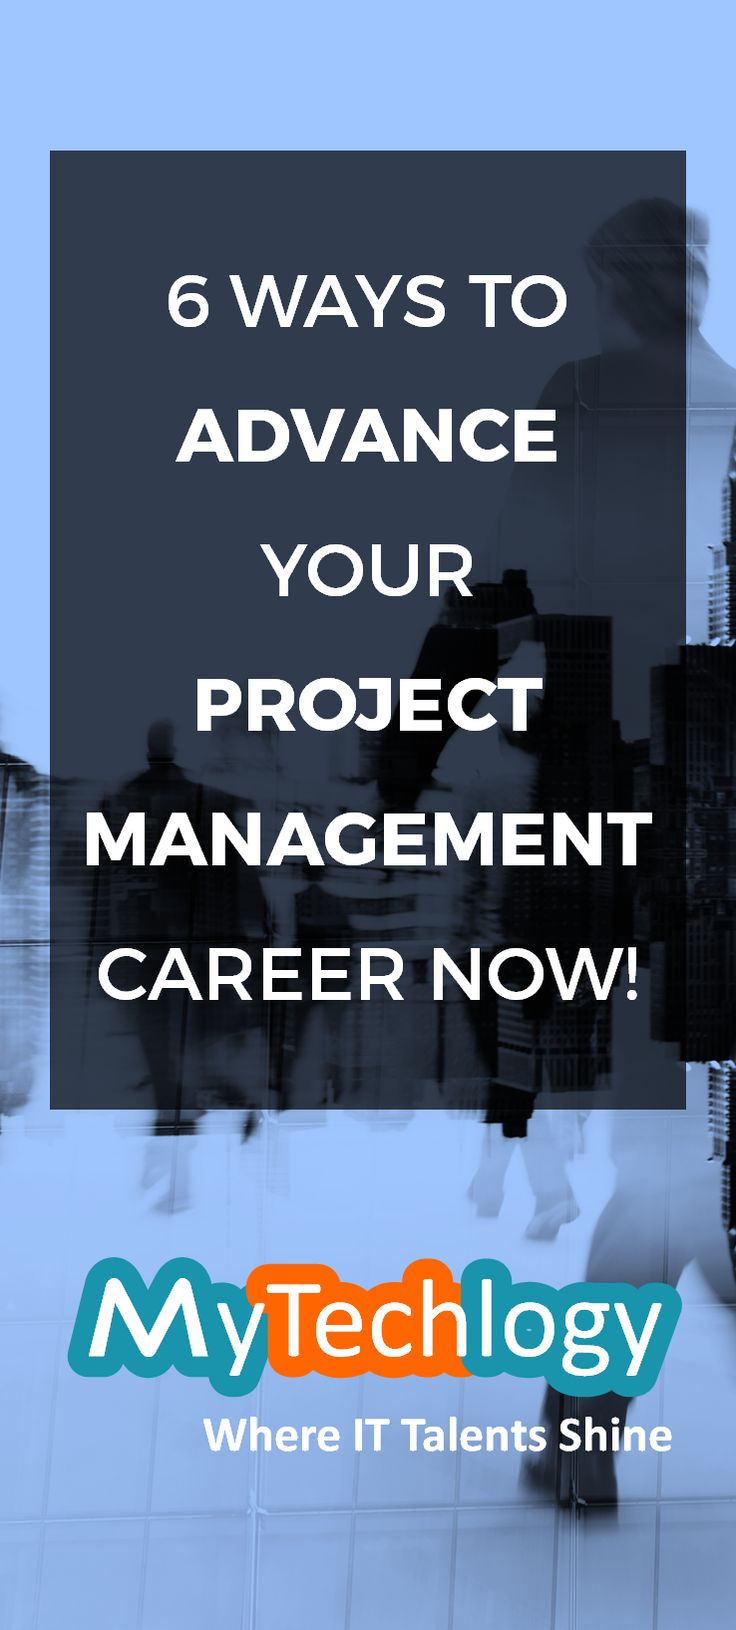 Are you looking to further advance your project management career? The key is to stand out from the crowd of people looking to accomplish the same thing. Read the blog to find out the six things you can do now that will help you to build a better career for tomorrow.  #projectmanagement #career